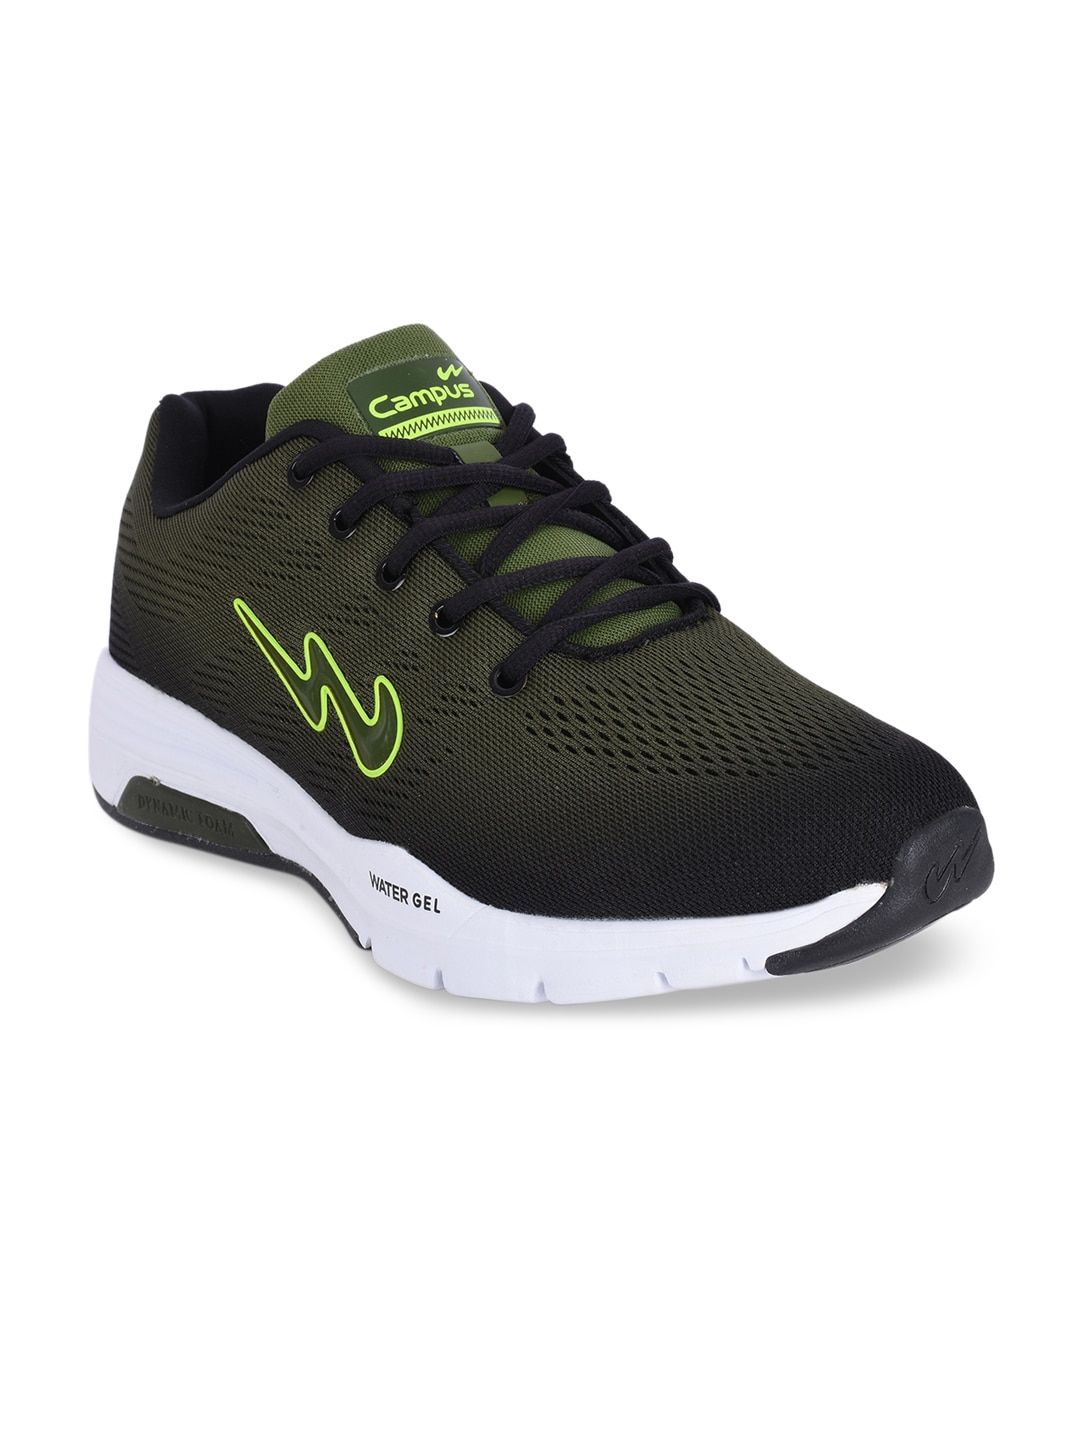 bfe0e8c983ab0 Sports Shoes - Buy Sport Shoes For Men   Women Online